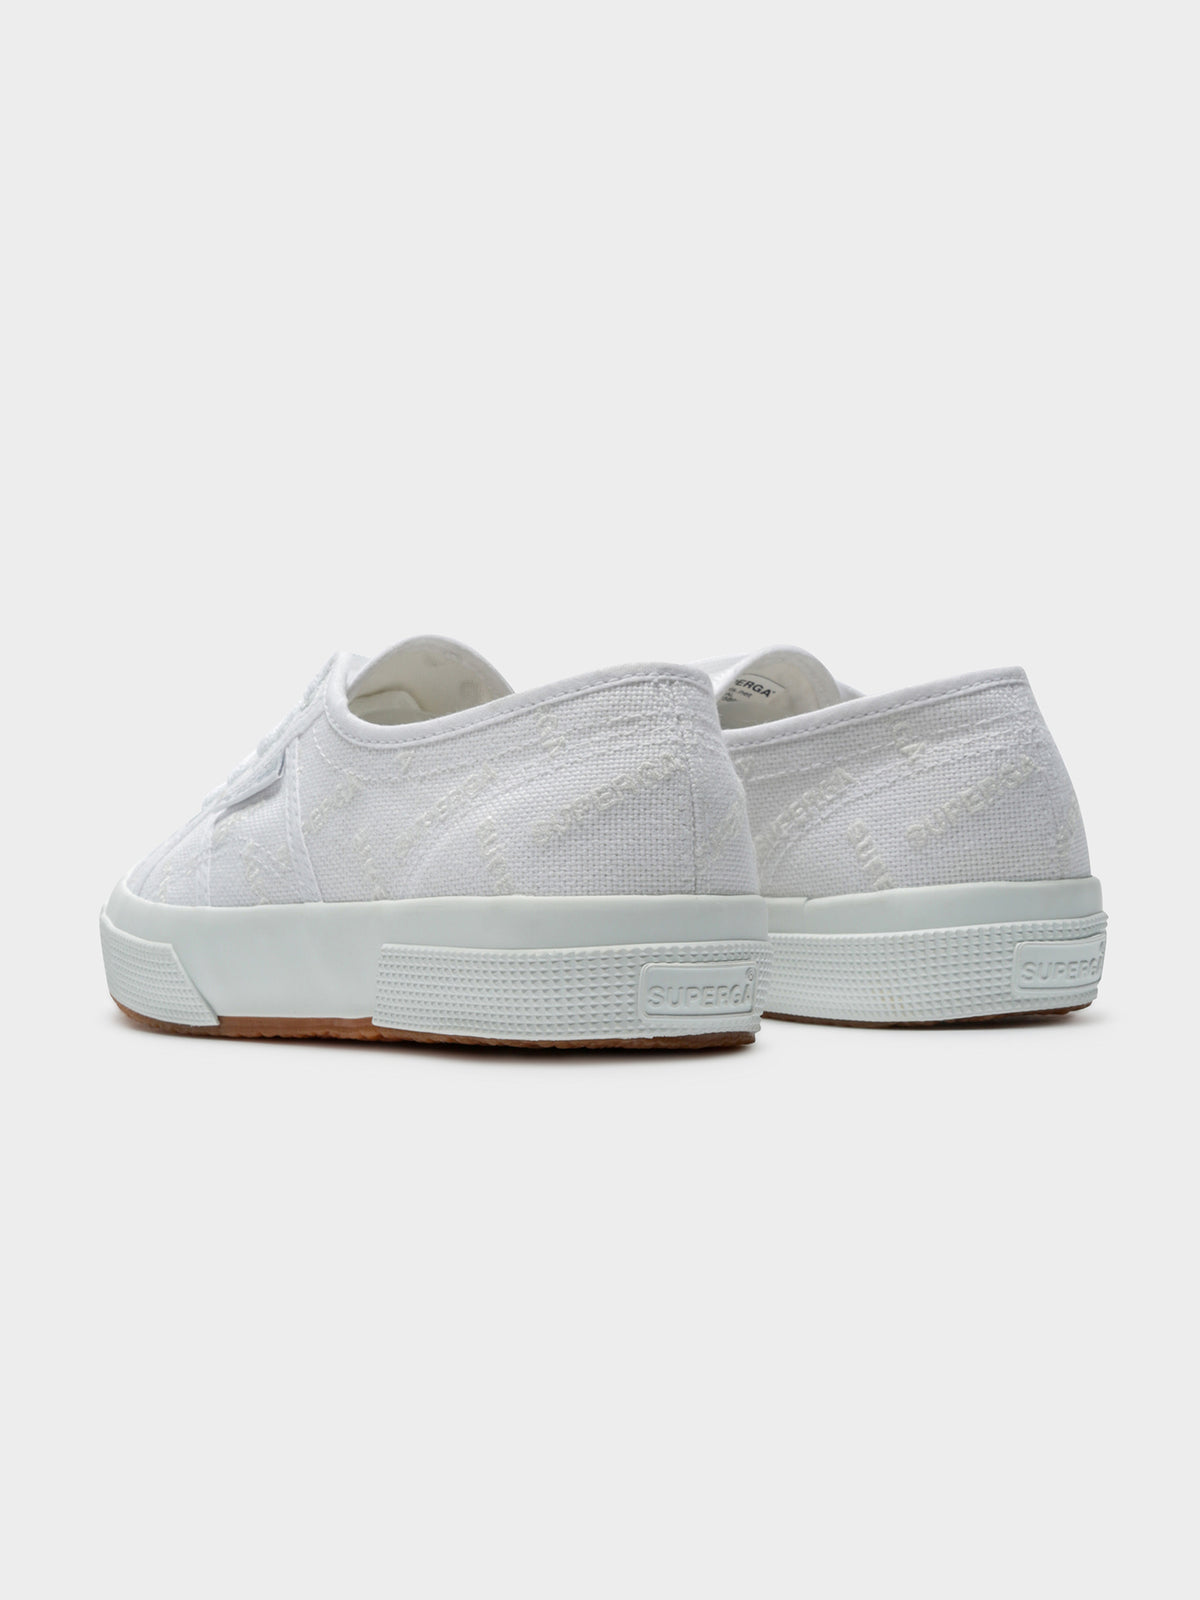 Womens 2750 Cotu Logo Sneakers in White